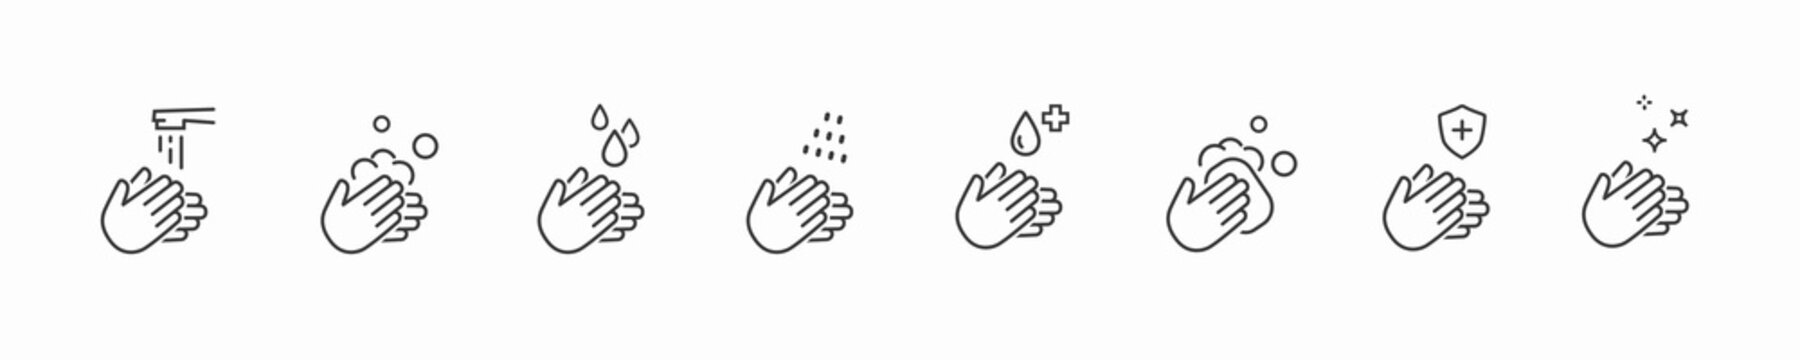 Icon set of disease prevention protect. Vector sanitizer, antiseptic, antibacterial symbols. Healthcare wash hands with rinse water, tap, soap drop and safety signs